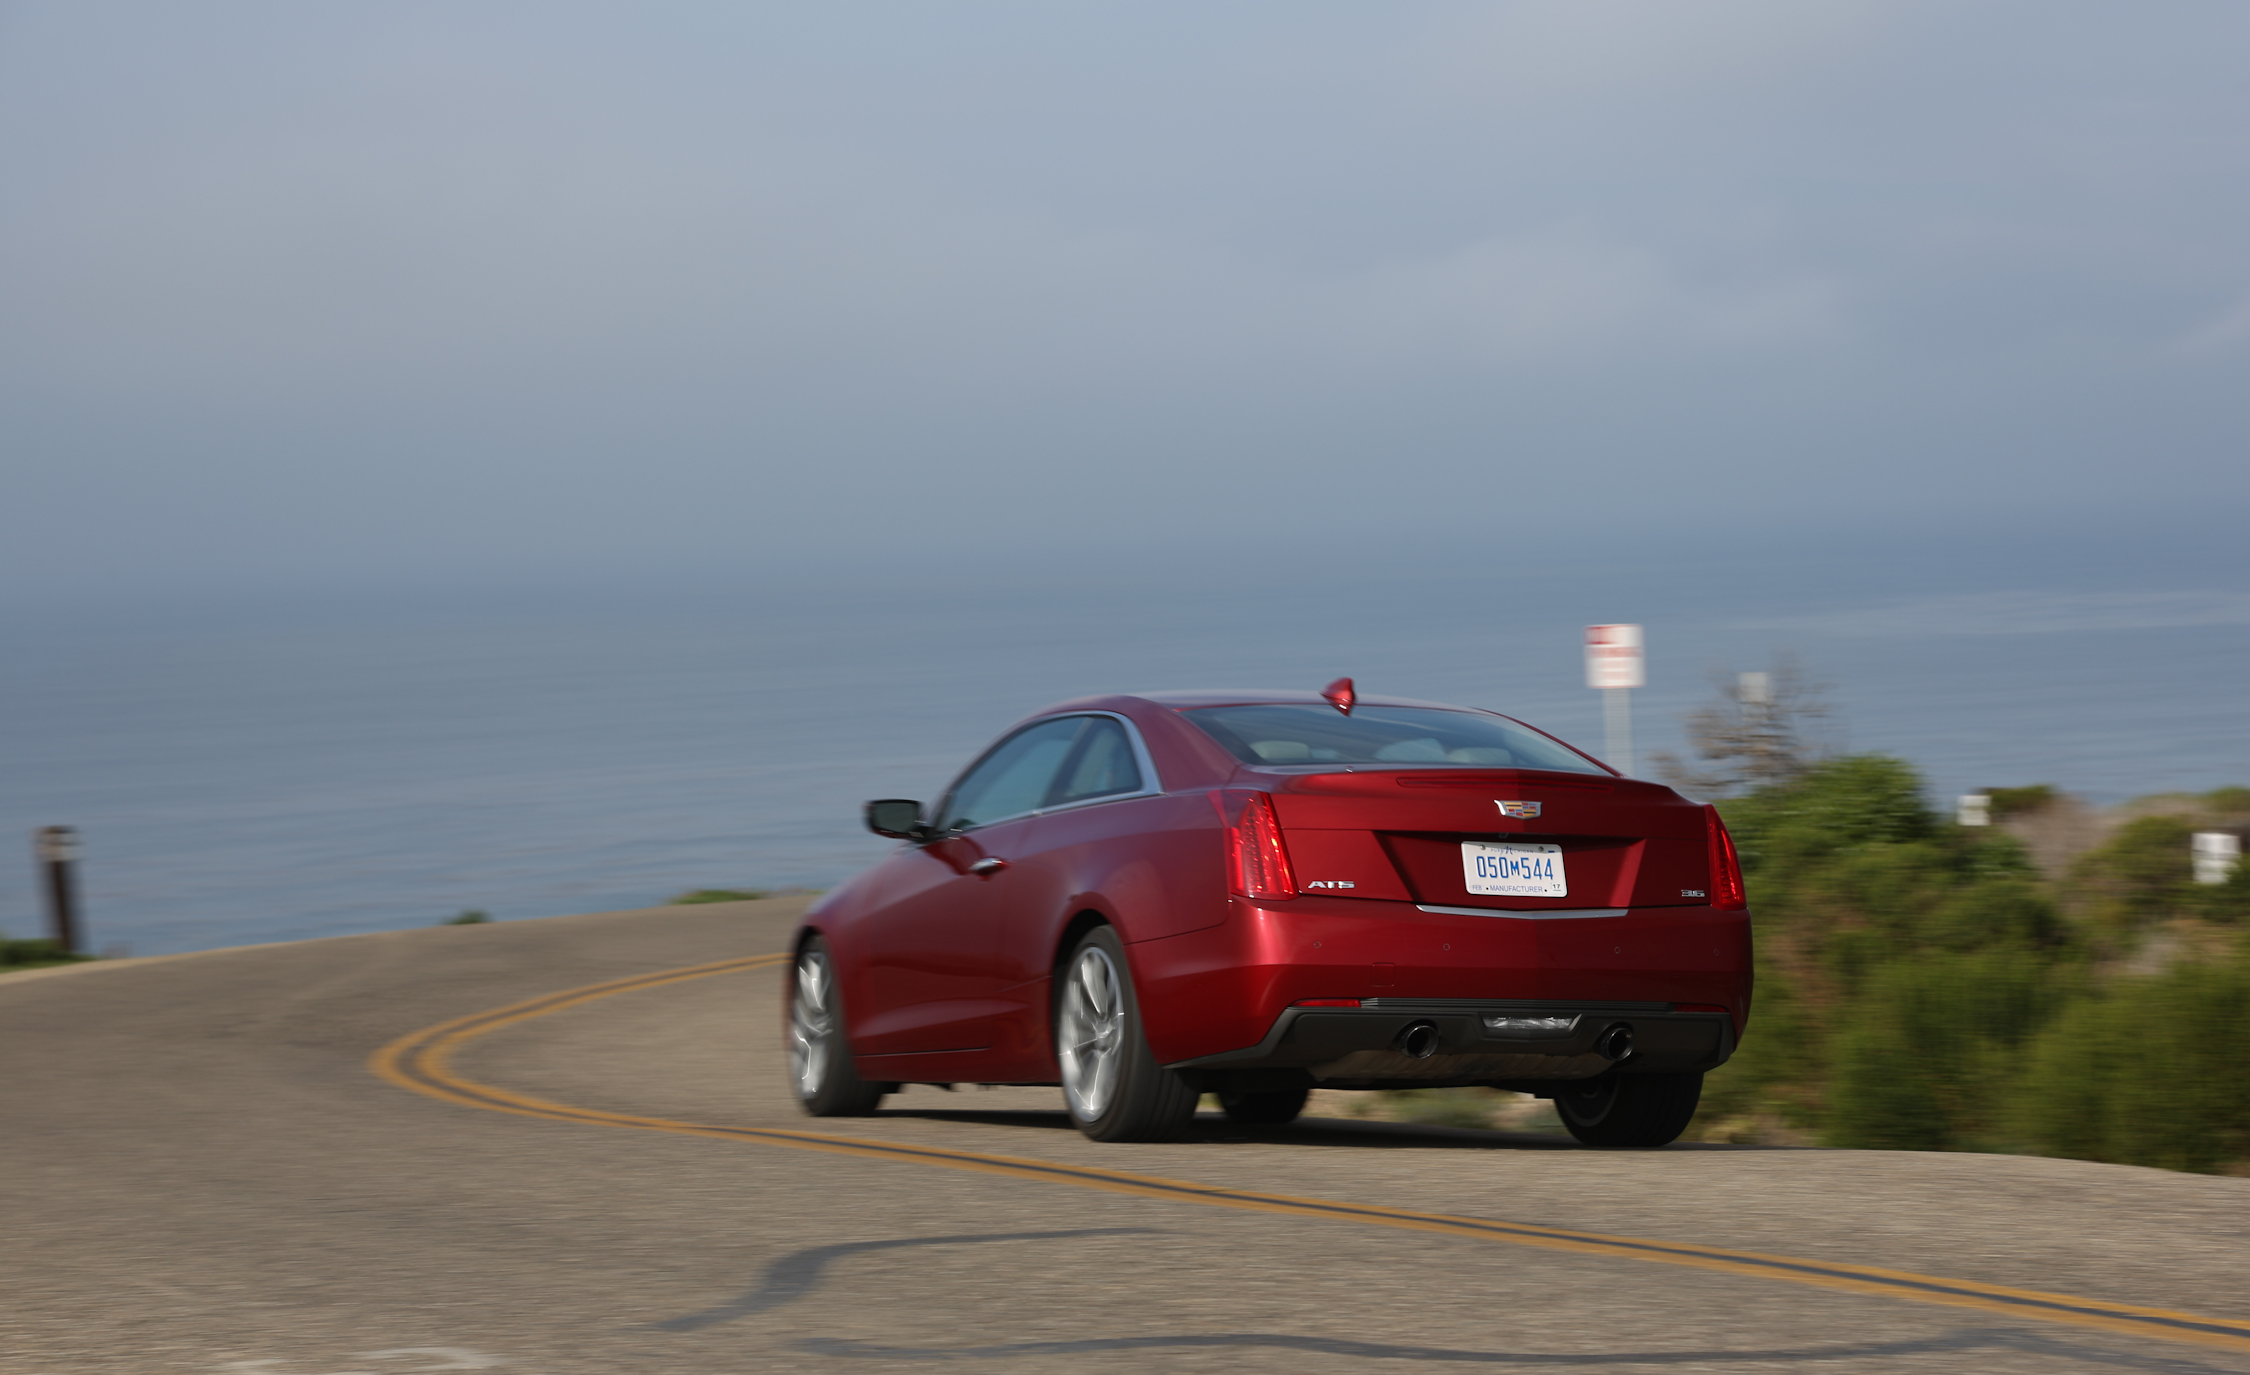 2015 Cadillac ATS Coupe 3.6 Rear Design